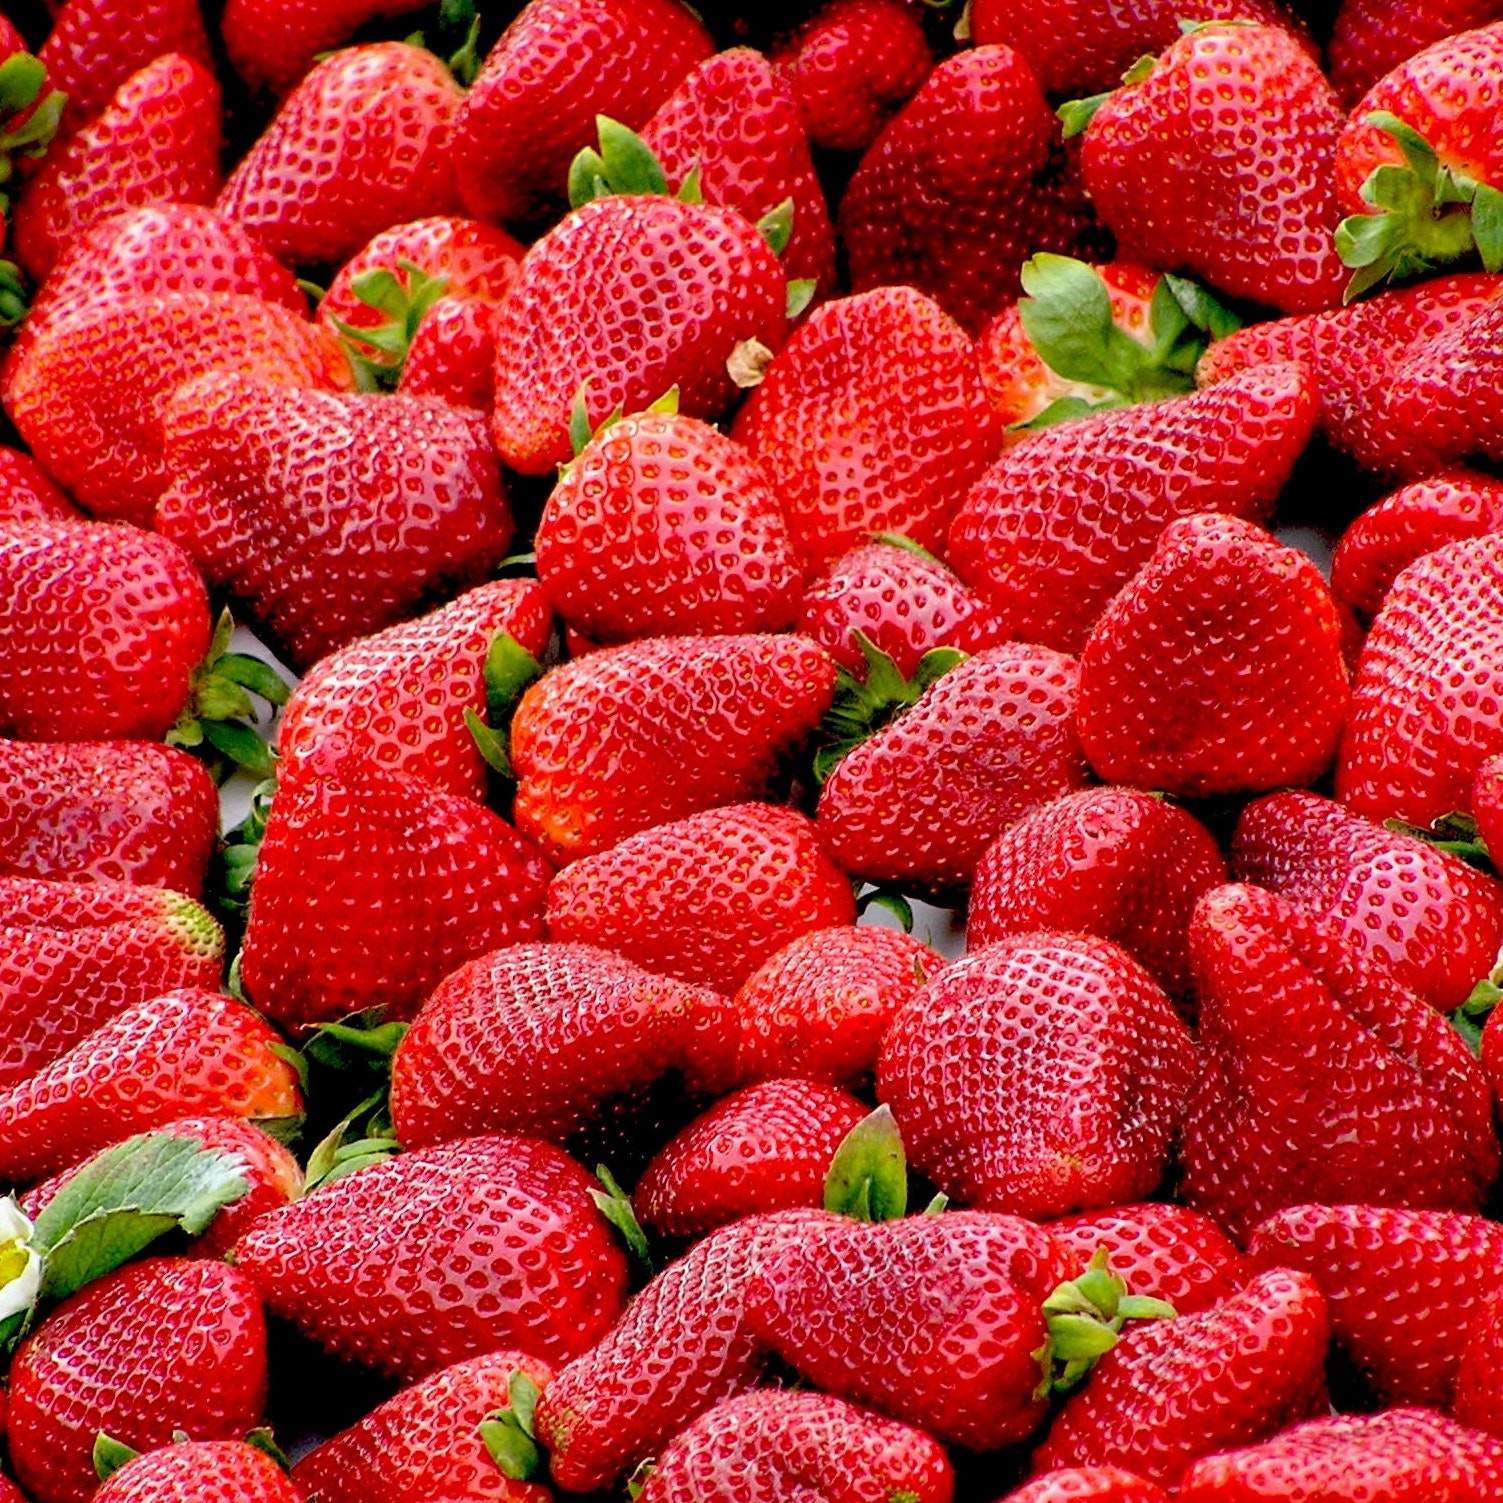 red-strawberries-fruit-royalty-free-70746